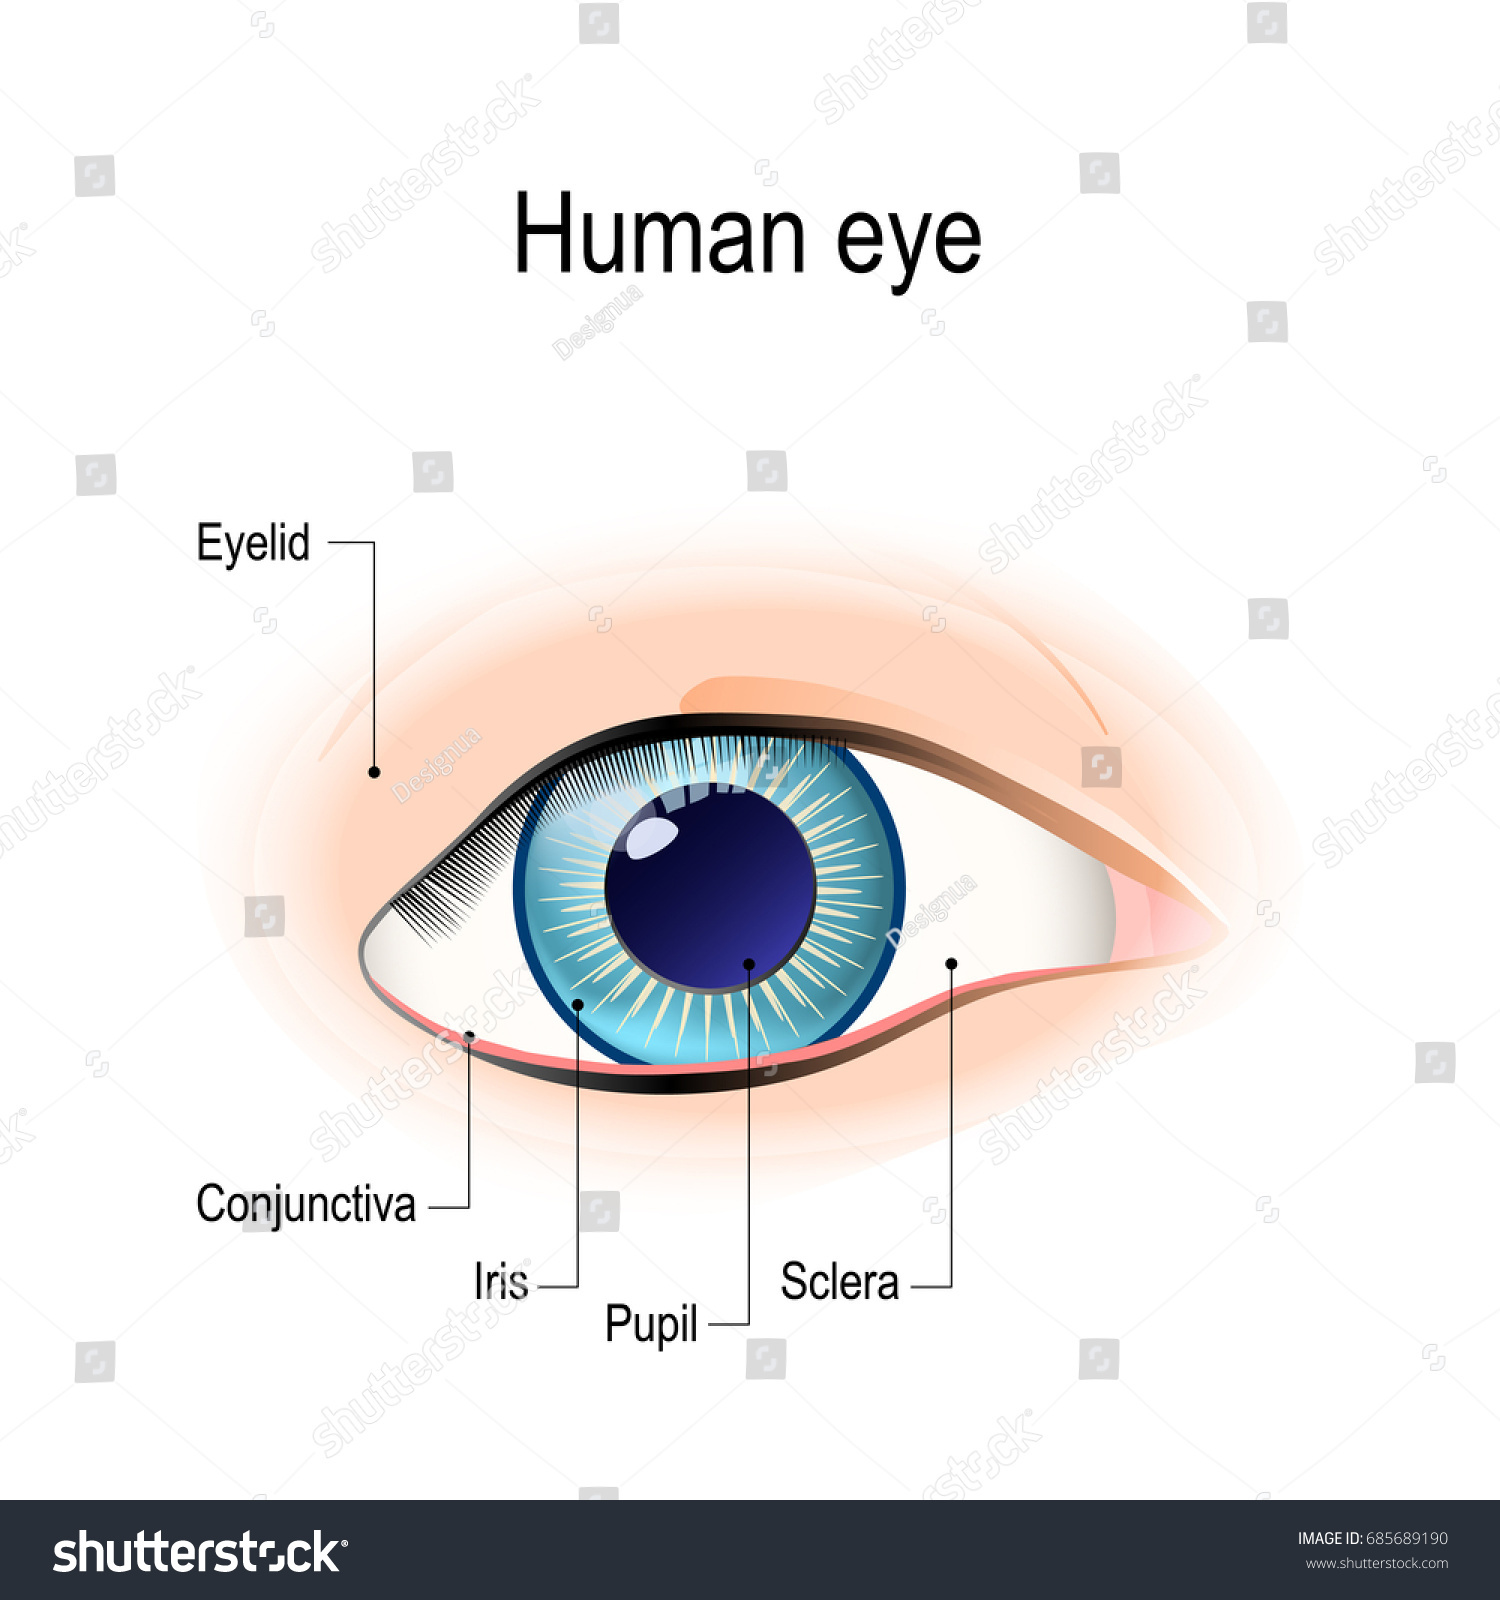 Anatomy Human Eye Front View External Stock Illustration 685689190 ...